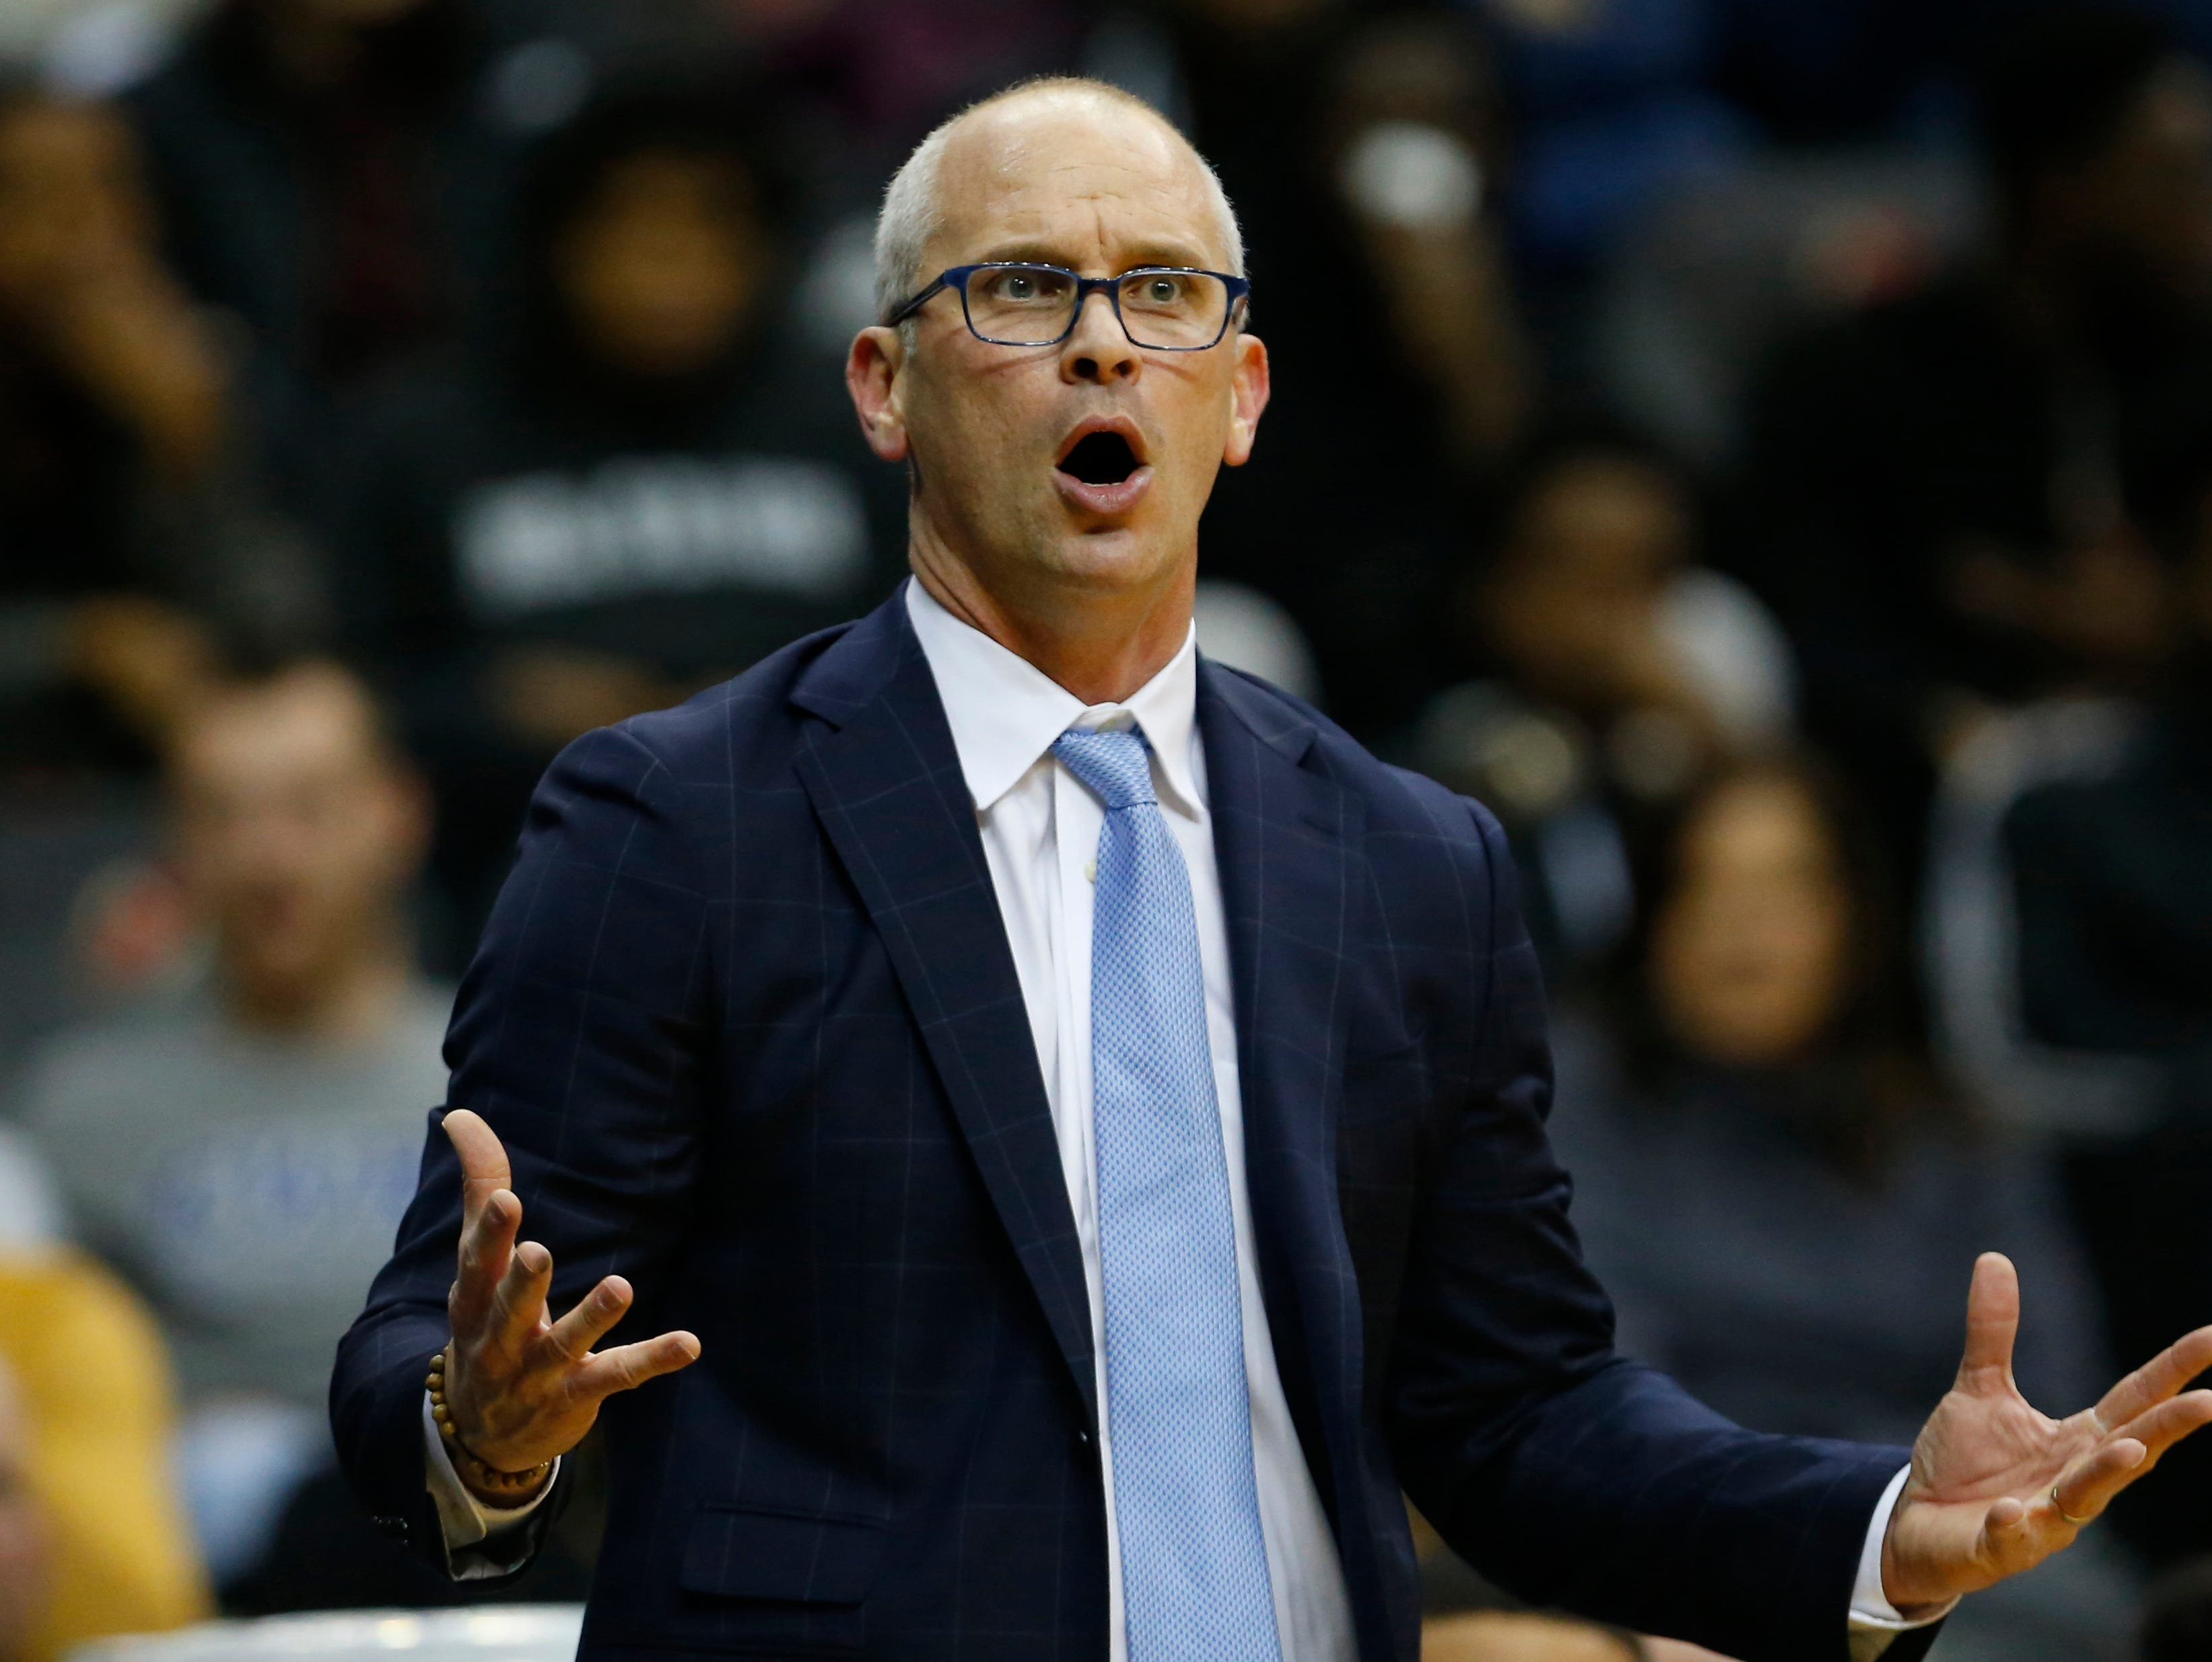 Dec 8, 2018; Newark, NJ, USA; Connecticut Huskies head coach Dan Hurley reacts to a call against the Huskies during the first half against the Florida State Seminoles at Prudential Center. Mandatory Credit: Noah K. Murray-USA TODAY Sports